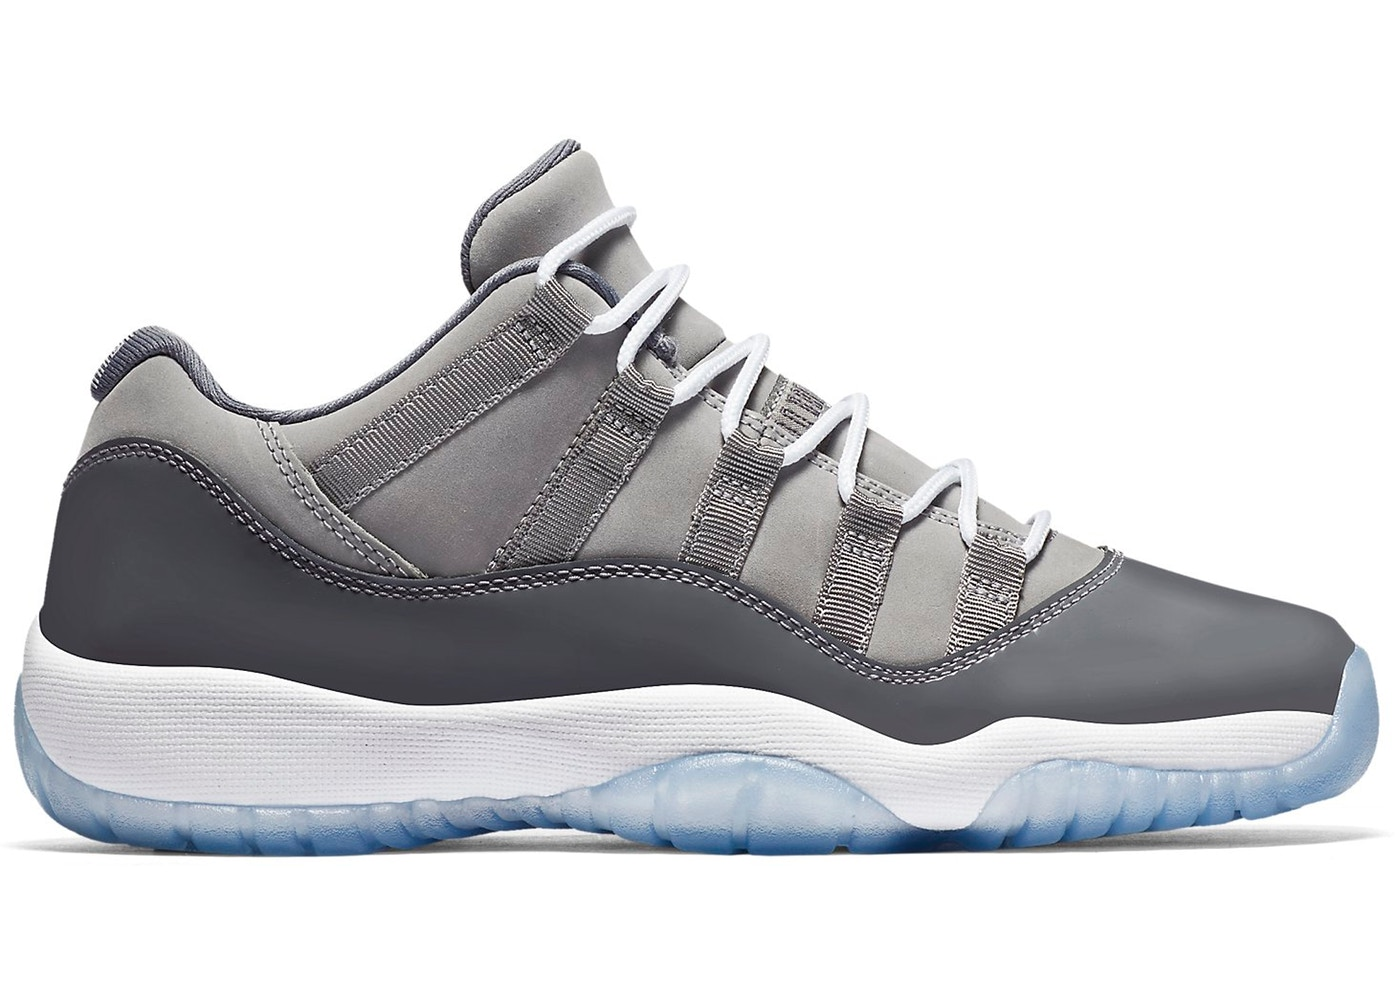 be9672ef1c1 Jordan 11 Retro Low Cool Grey (GS) - 528896-003